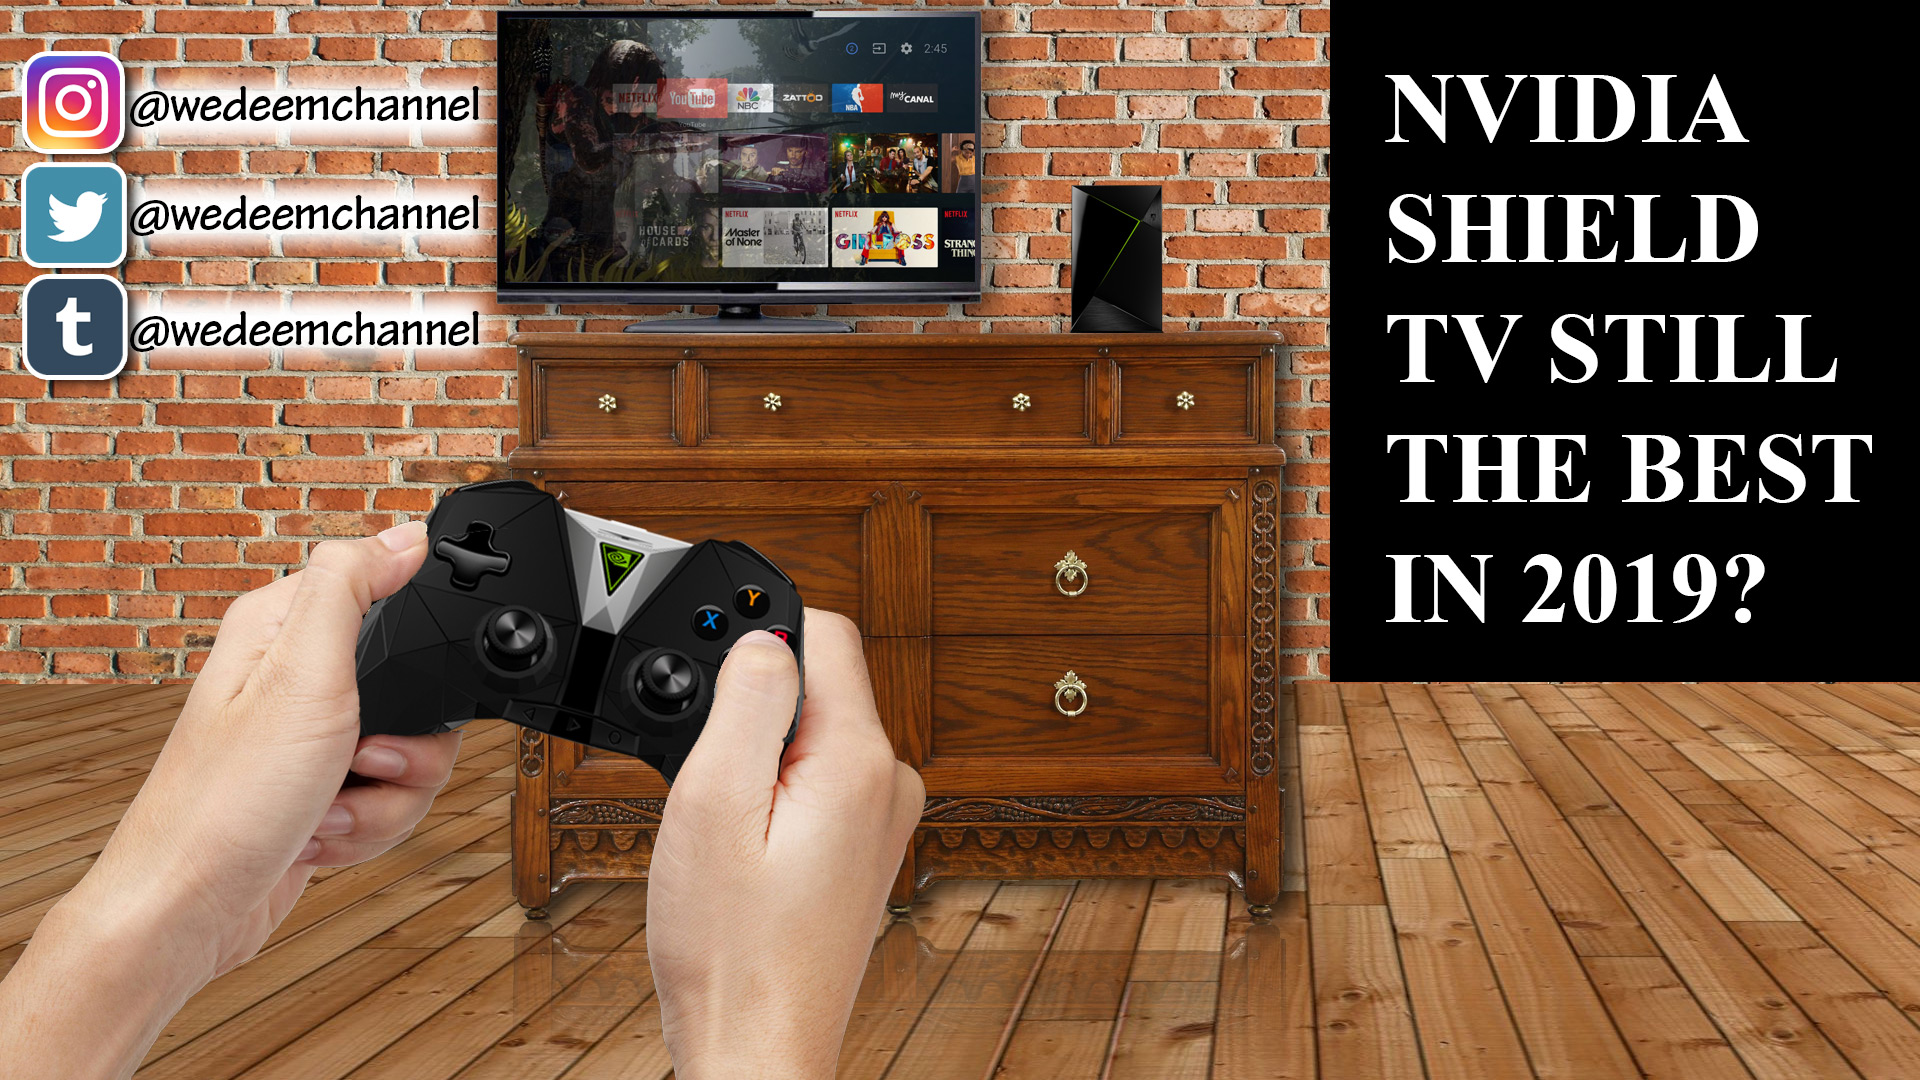 Nvidia Shield Tv Featured Image